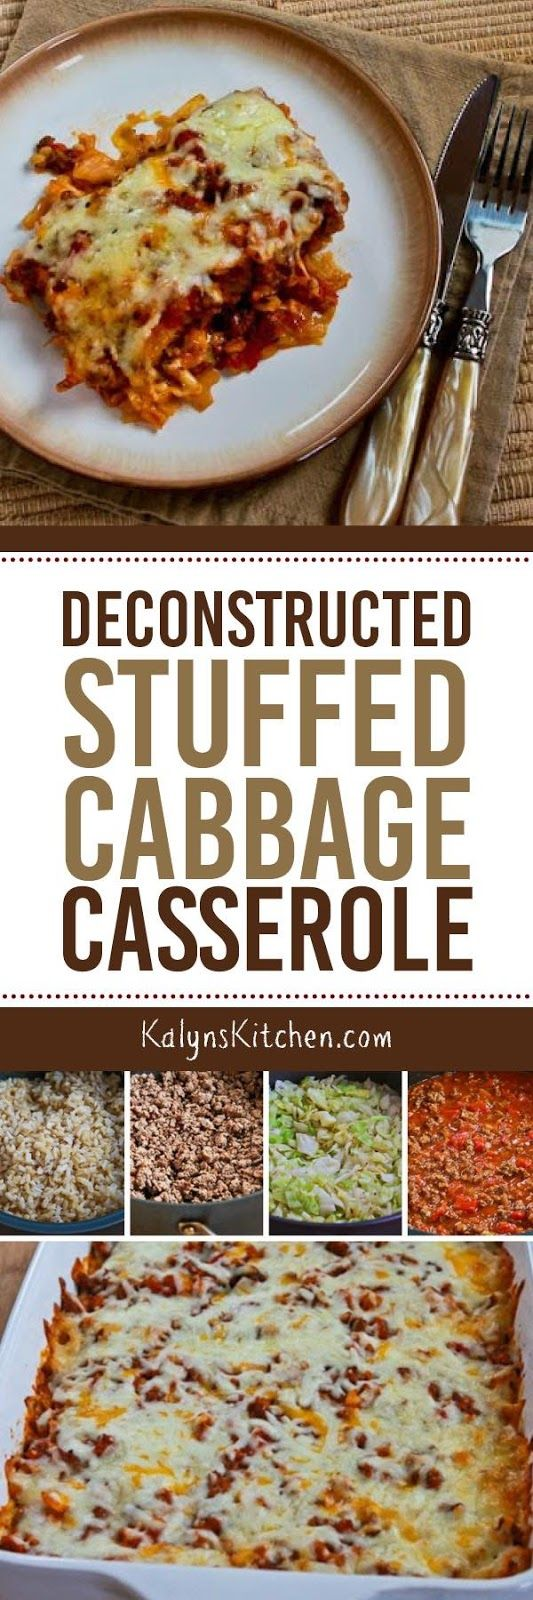 This Deconstructed Stuffed Cabbage Casserole is one of the most popular casseroles on my blog; PIN IT NOW so you can make the recipe when it's casserole season. [found on KalynsKitchen.com]